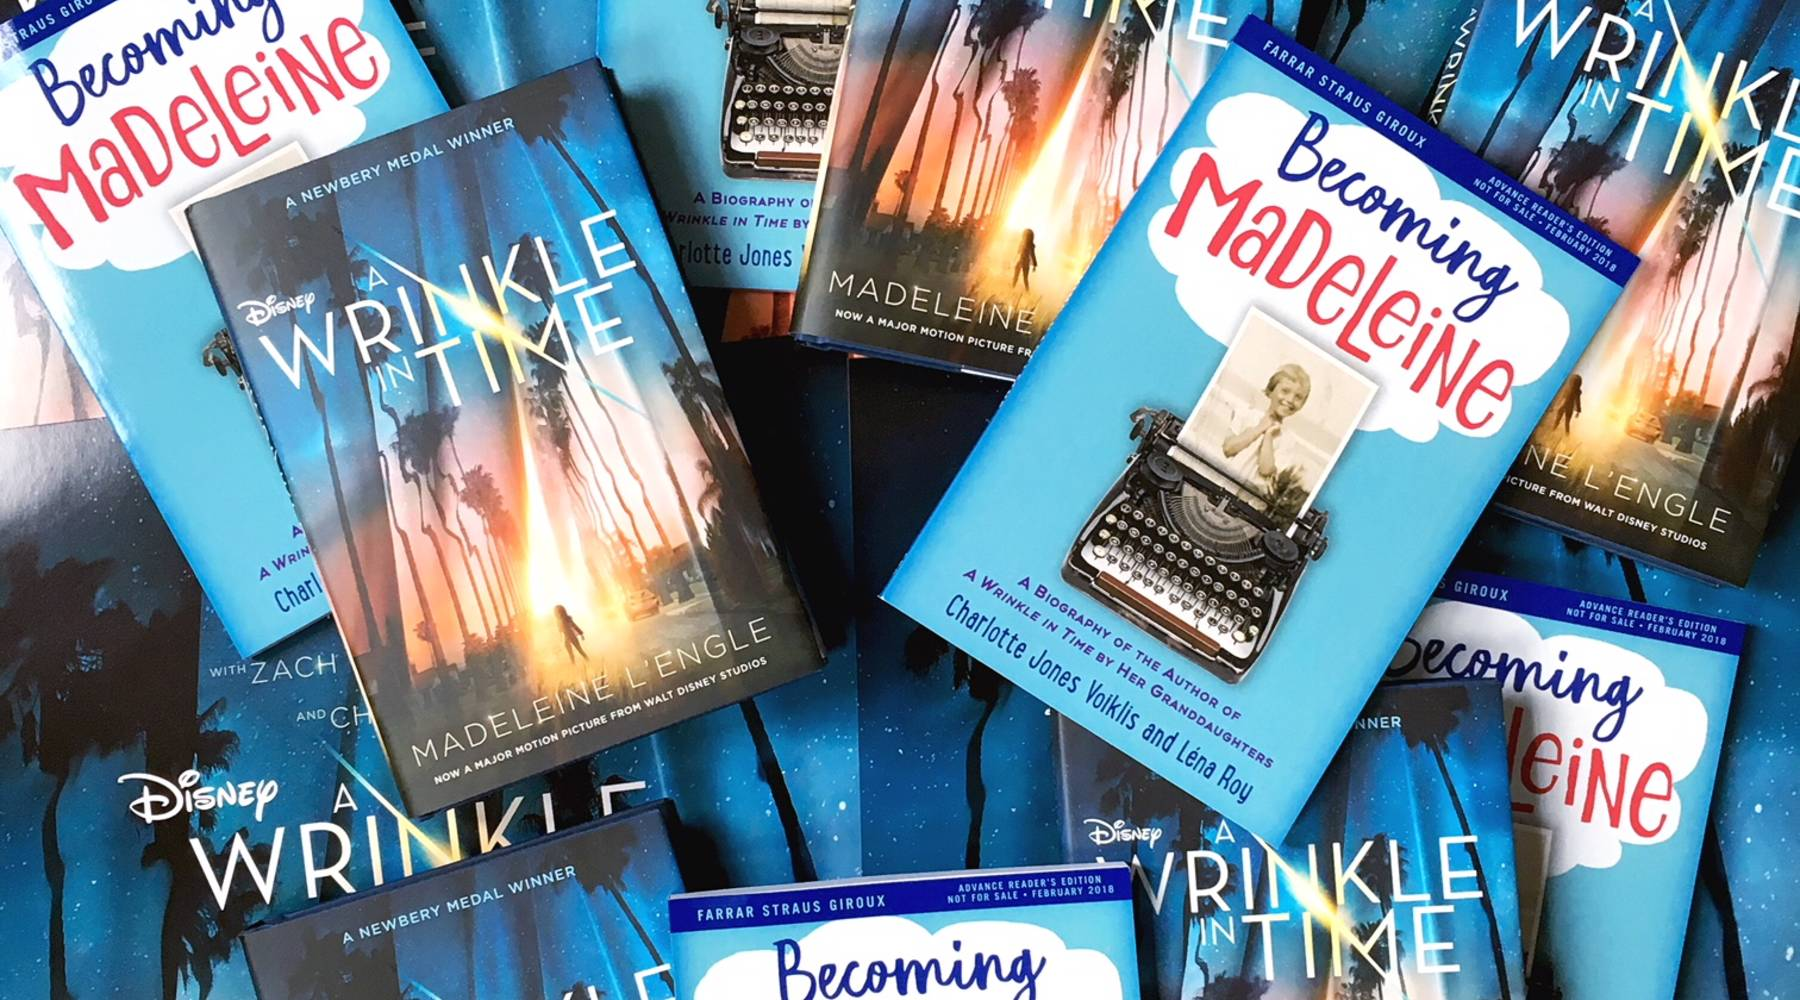 Book club readers wrestle with faith, conformity and magic